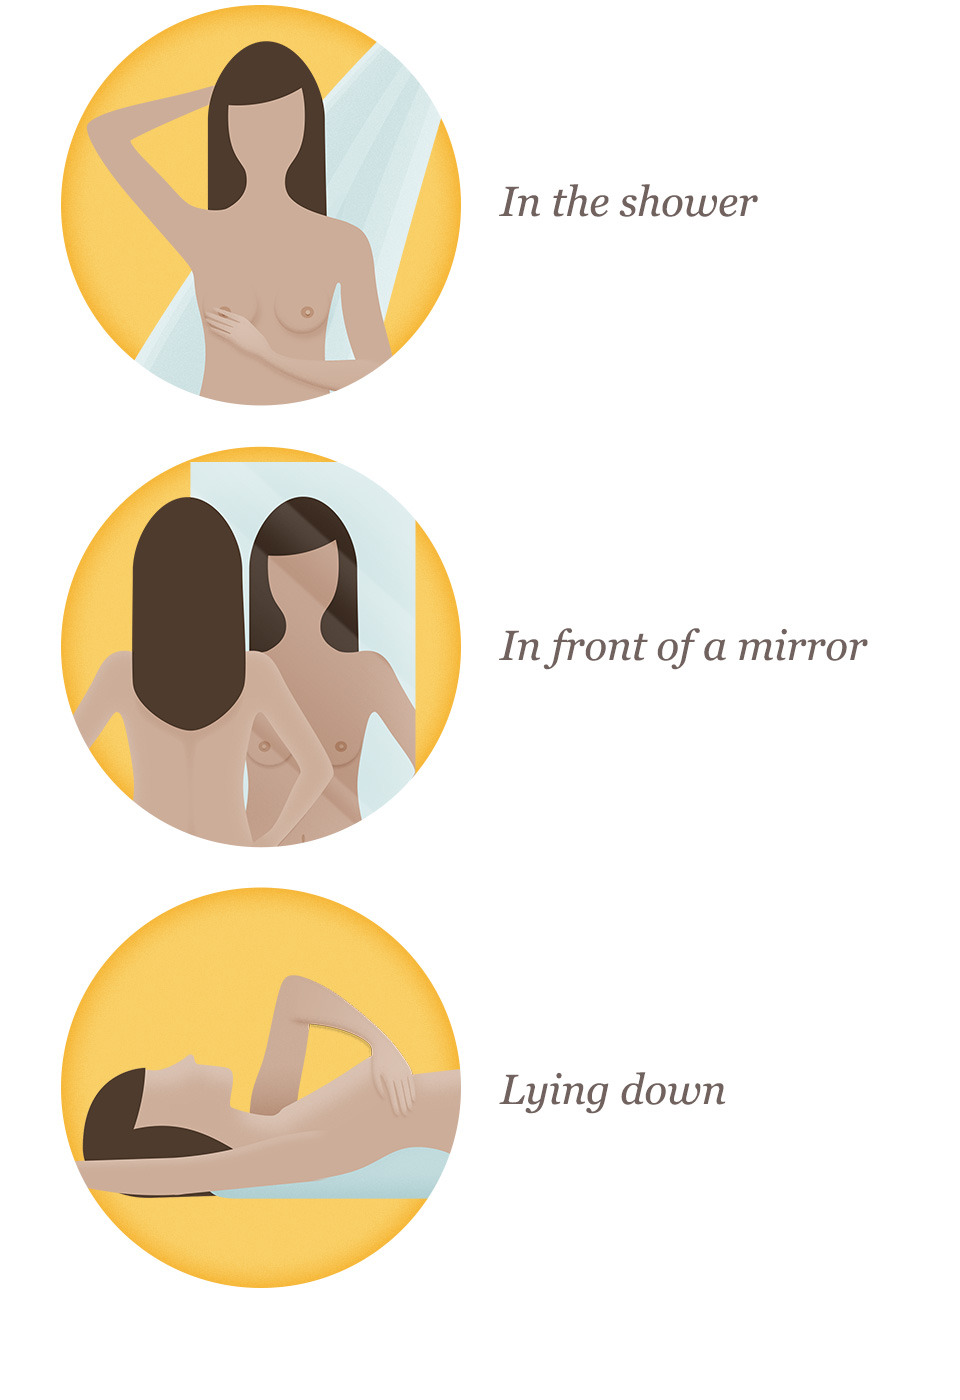 pregnanacy during self Breast exams